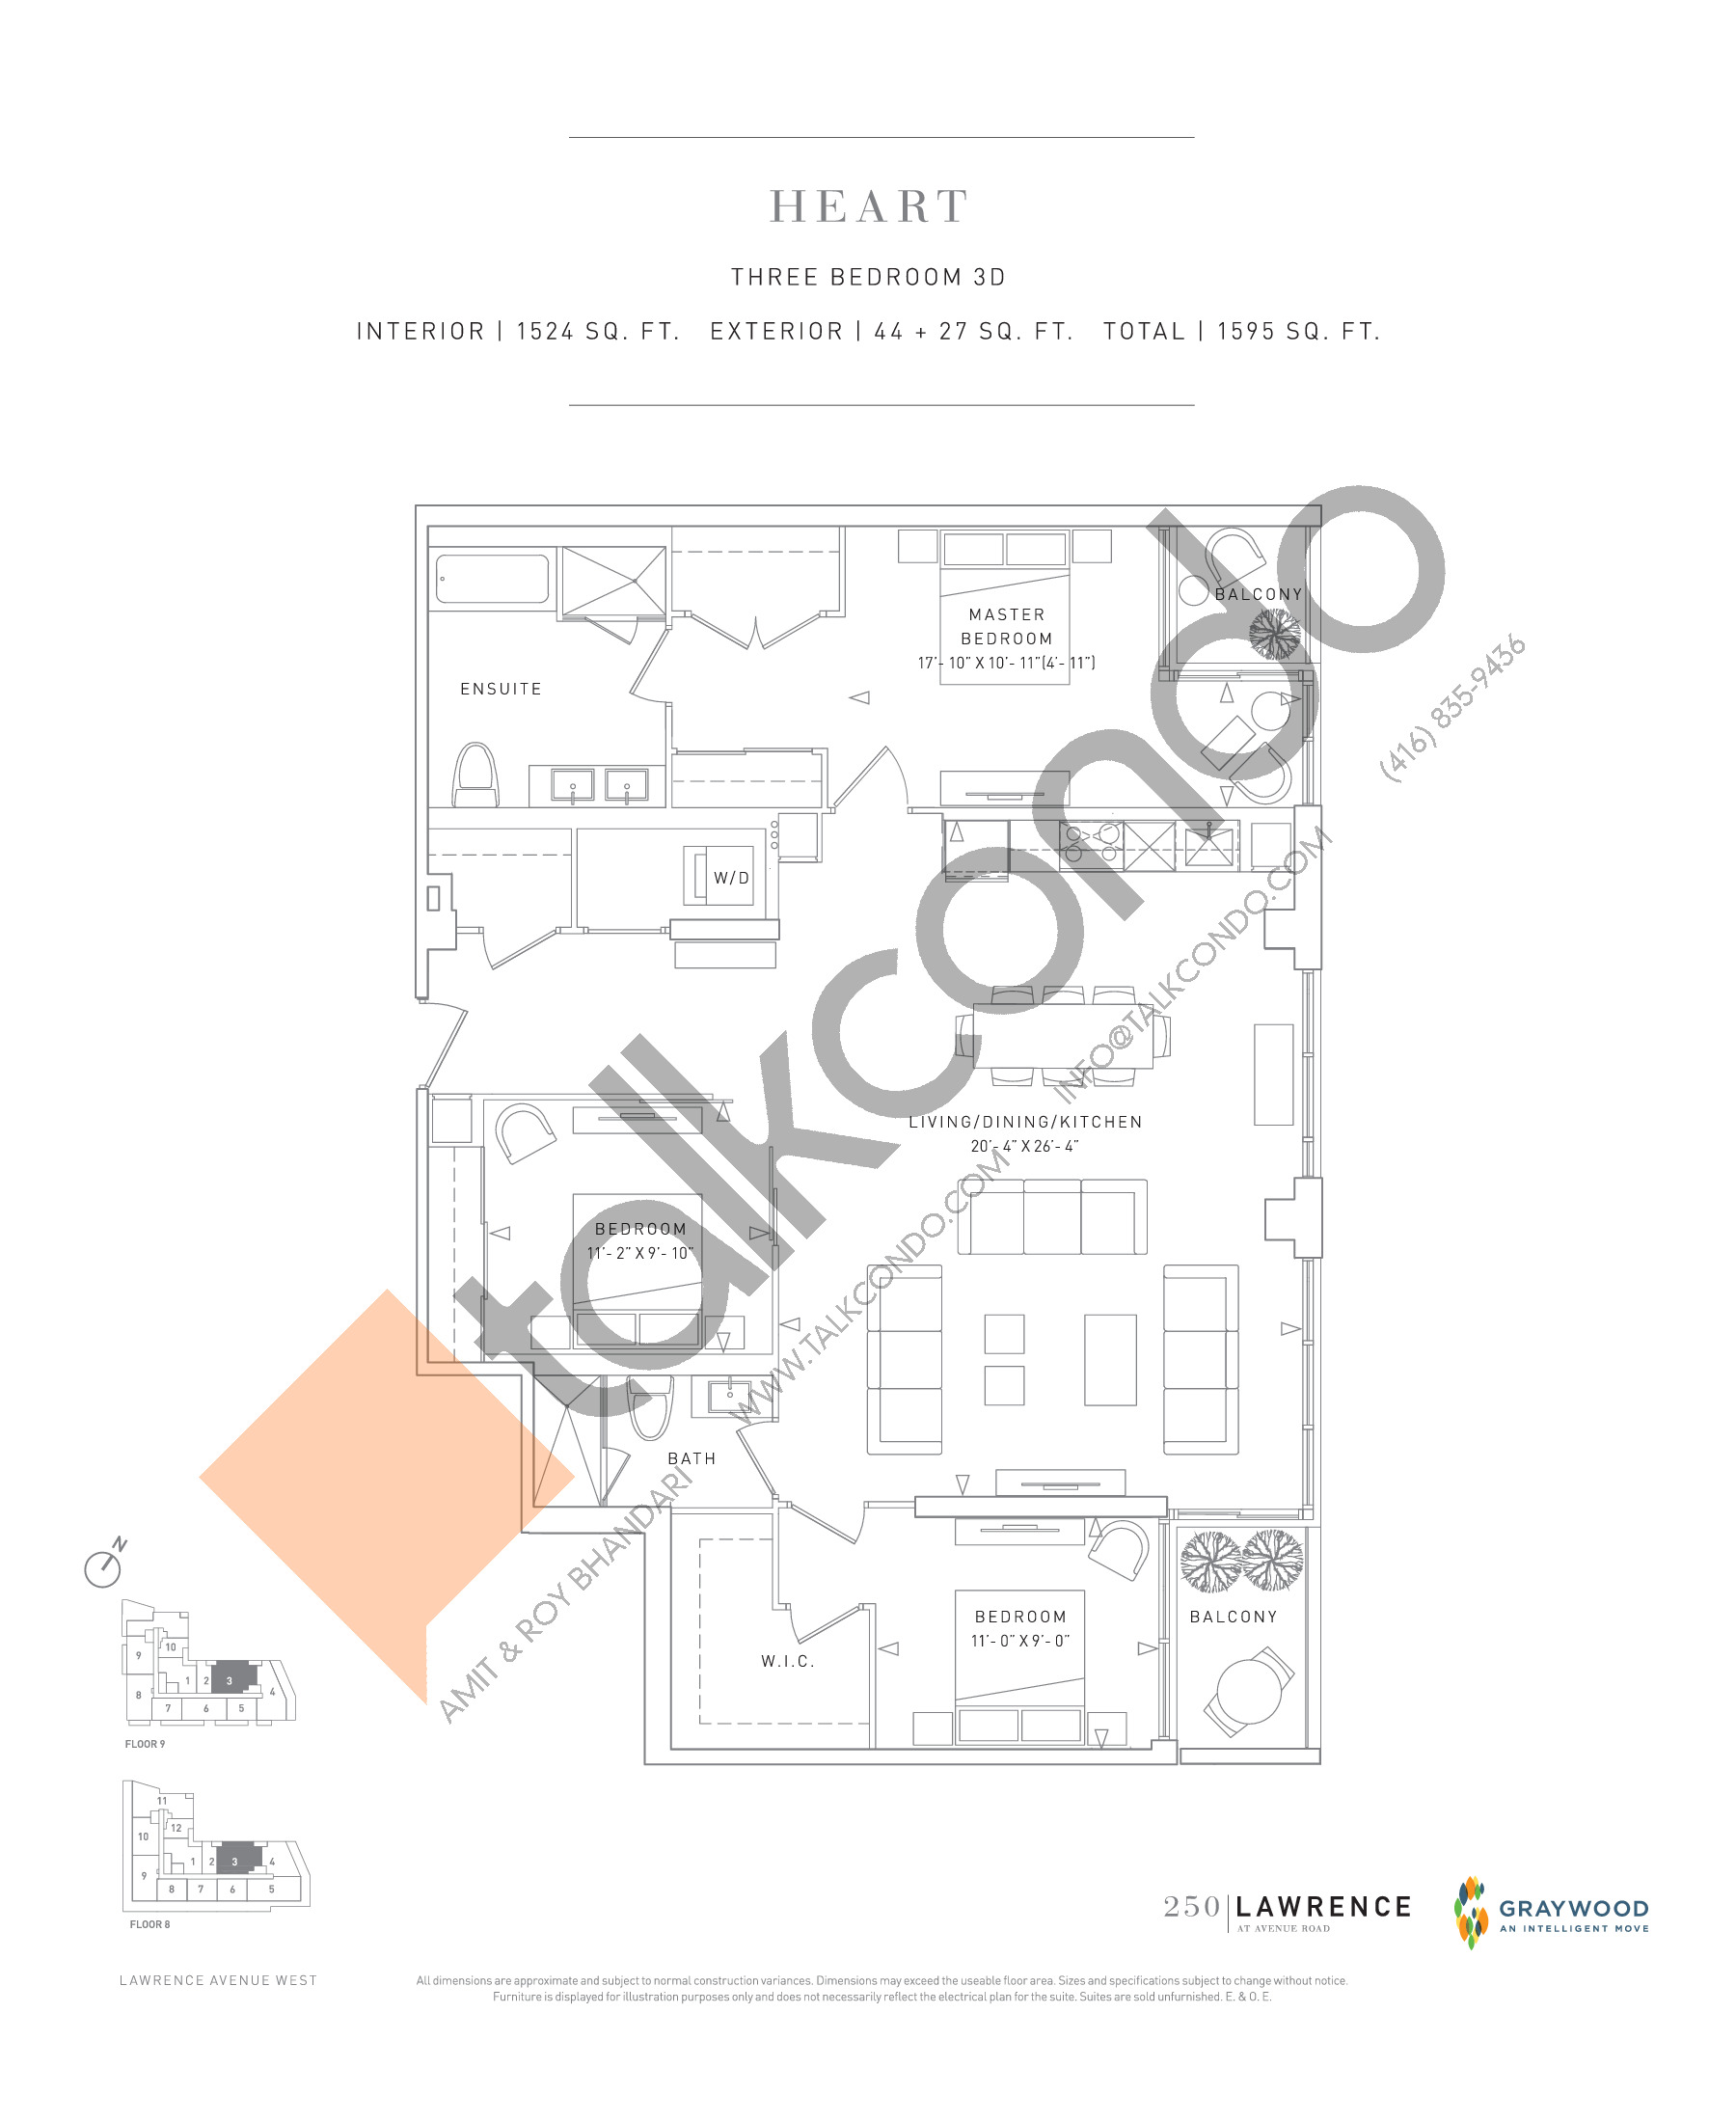 Heart Floor Plan at 250 Lawrence Avenue West Condos - 1524 sq.ft